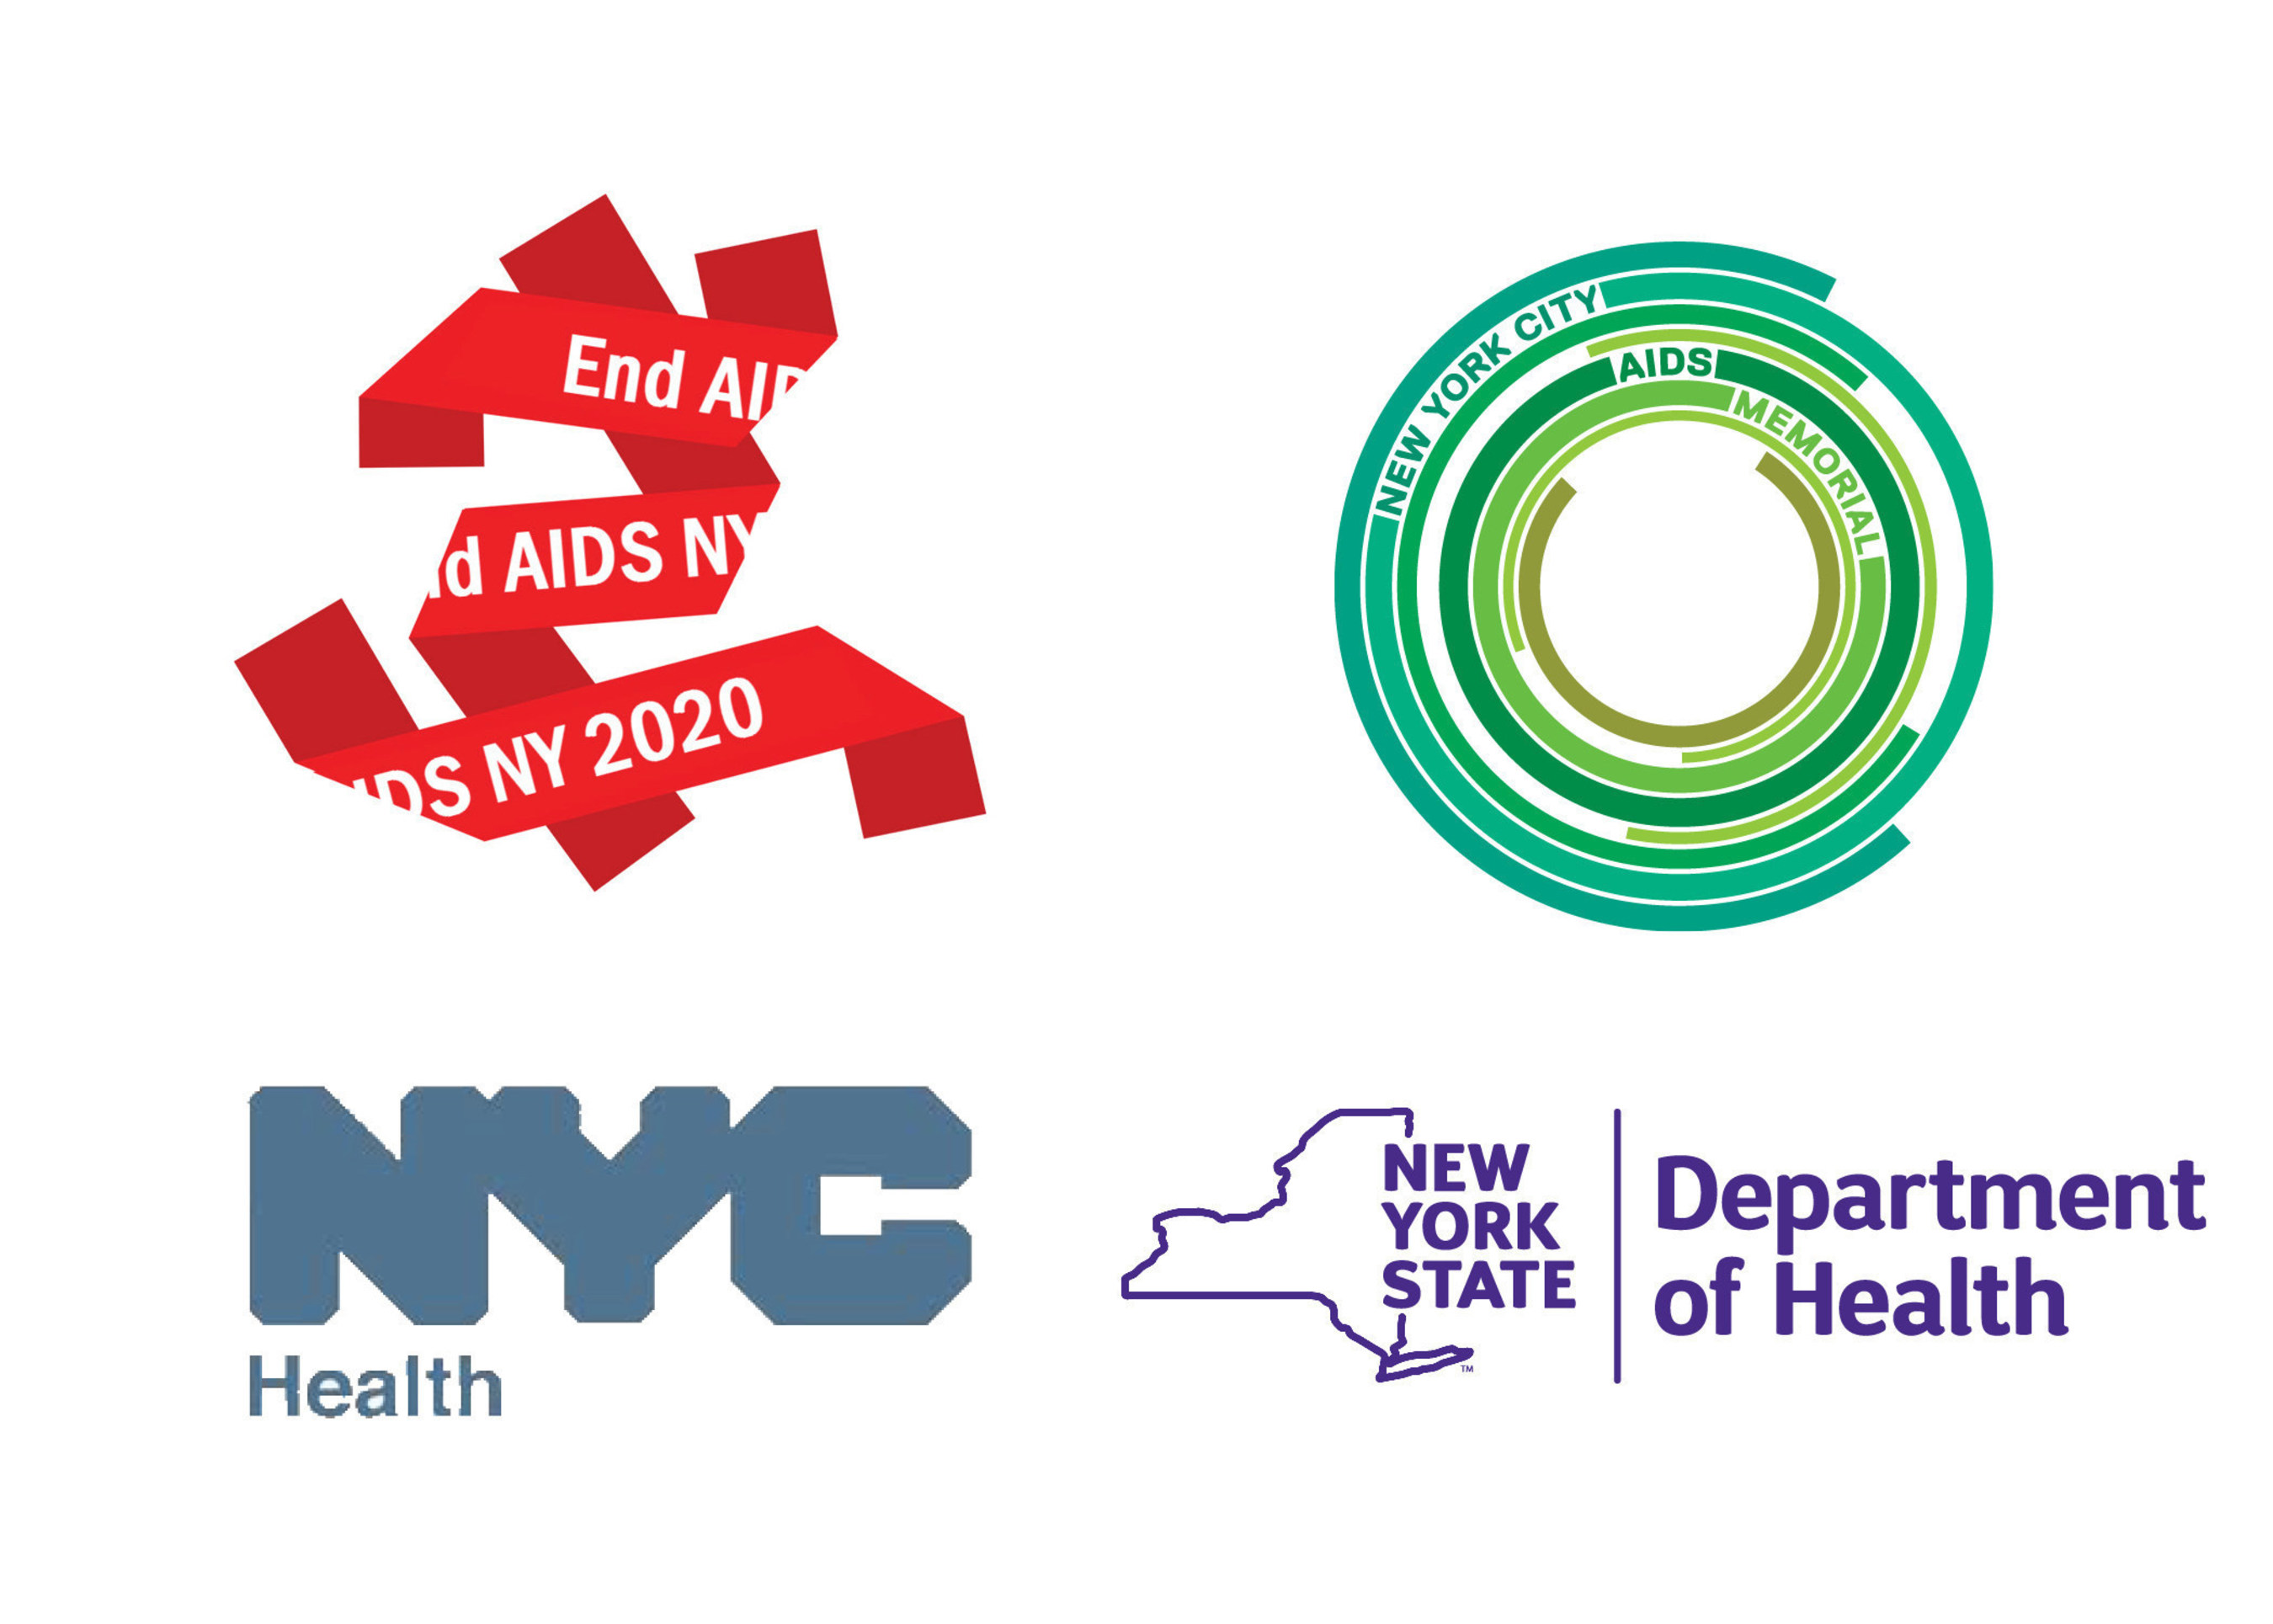 The New York City AIDS Memorial Board of Directors and representatives, the New York City Department of Health and Mental Hygiene, the New York State Department of Health, and the END AIDS NY 2020 Coalition (comprised of over 70 community-based organizations who are working towards an end to the AIDS epidemic by 2020 through expanded testing, treatment, and prevention) have joined forces to host a public dedication of the newly completed New York City AIDS Memorial on World AIDS Day - December 1,  2016.  For more information or to contribute to the New York City AIDS Memorial, visit nycaidsmemorial.org.